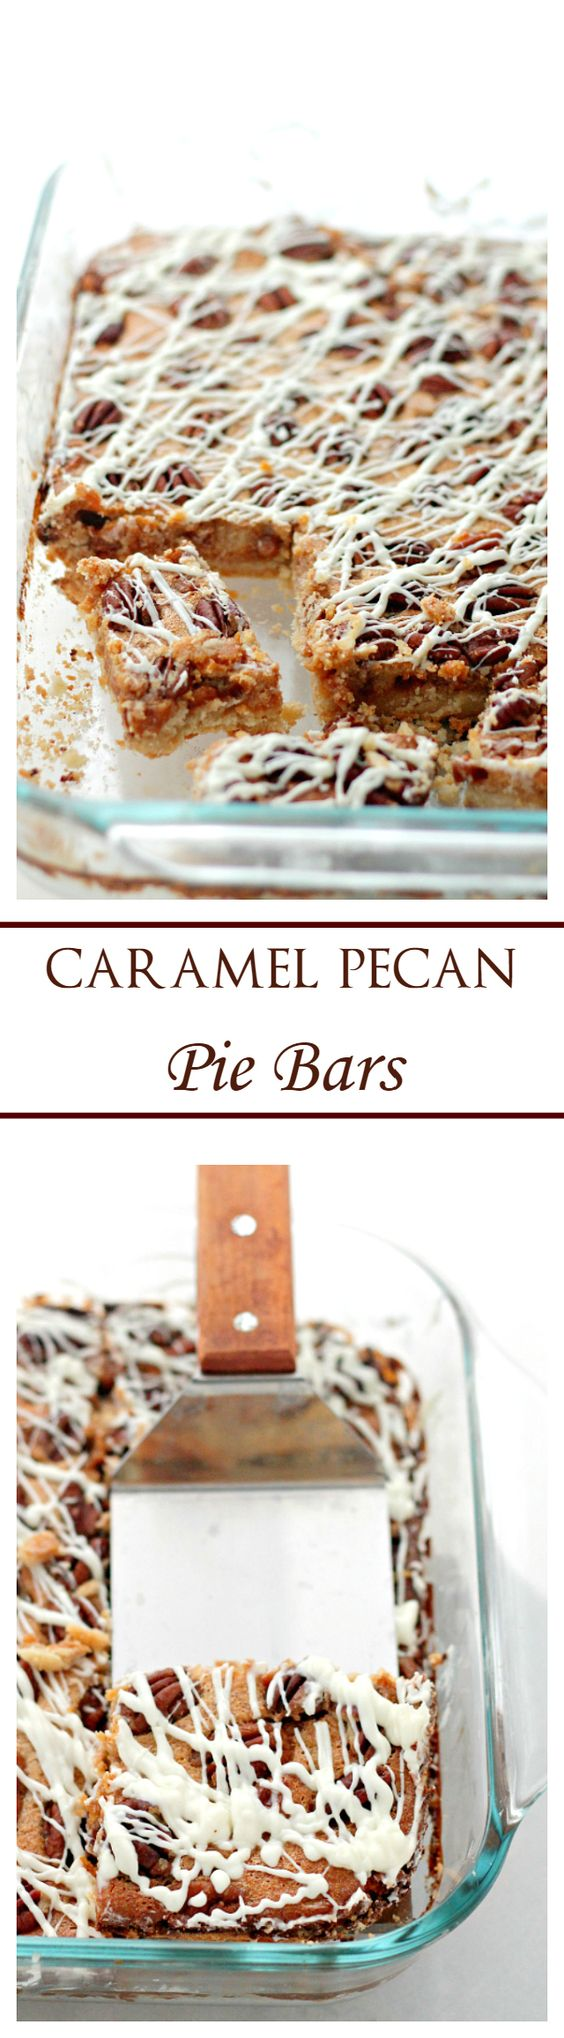 Caramel pecan pie, Caramel pecan and Pecan pie bars on Pinterest